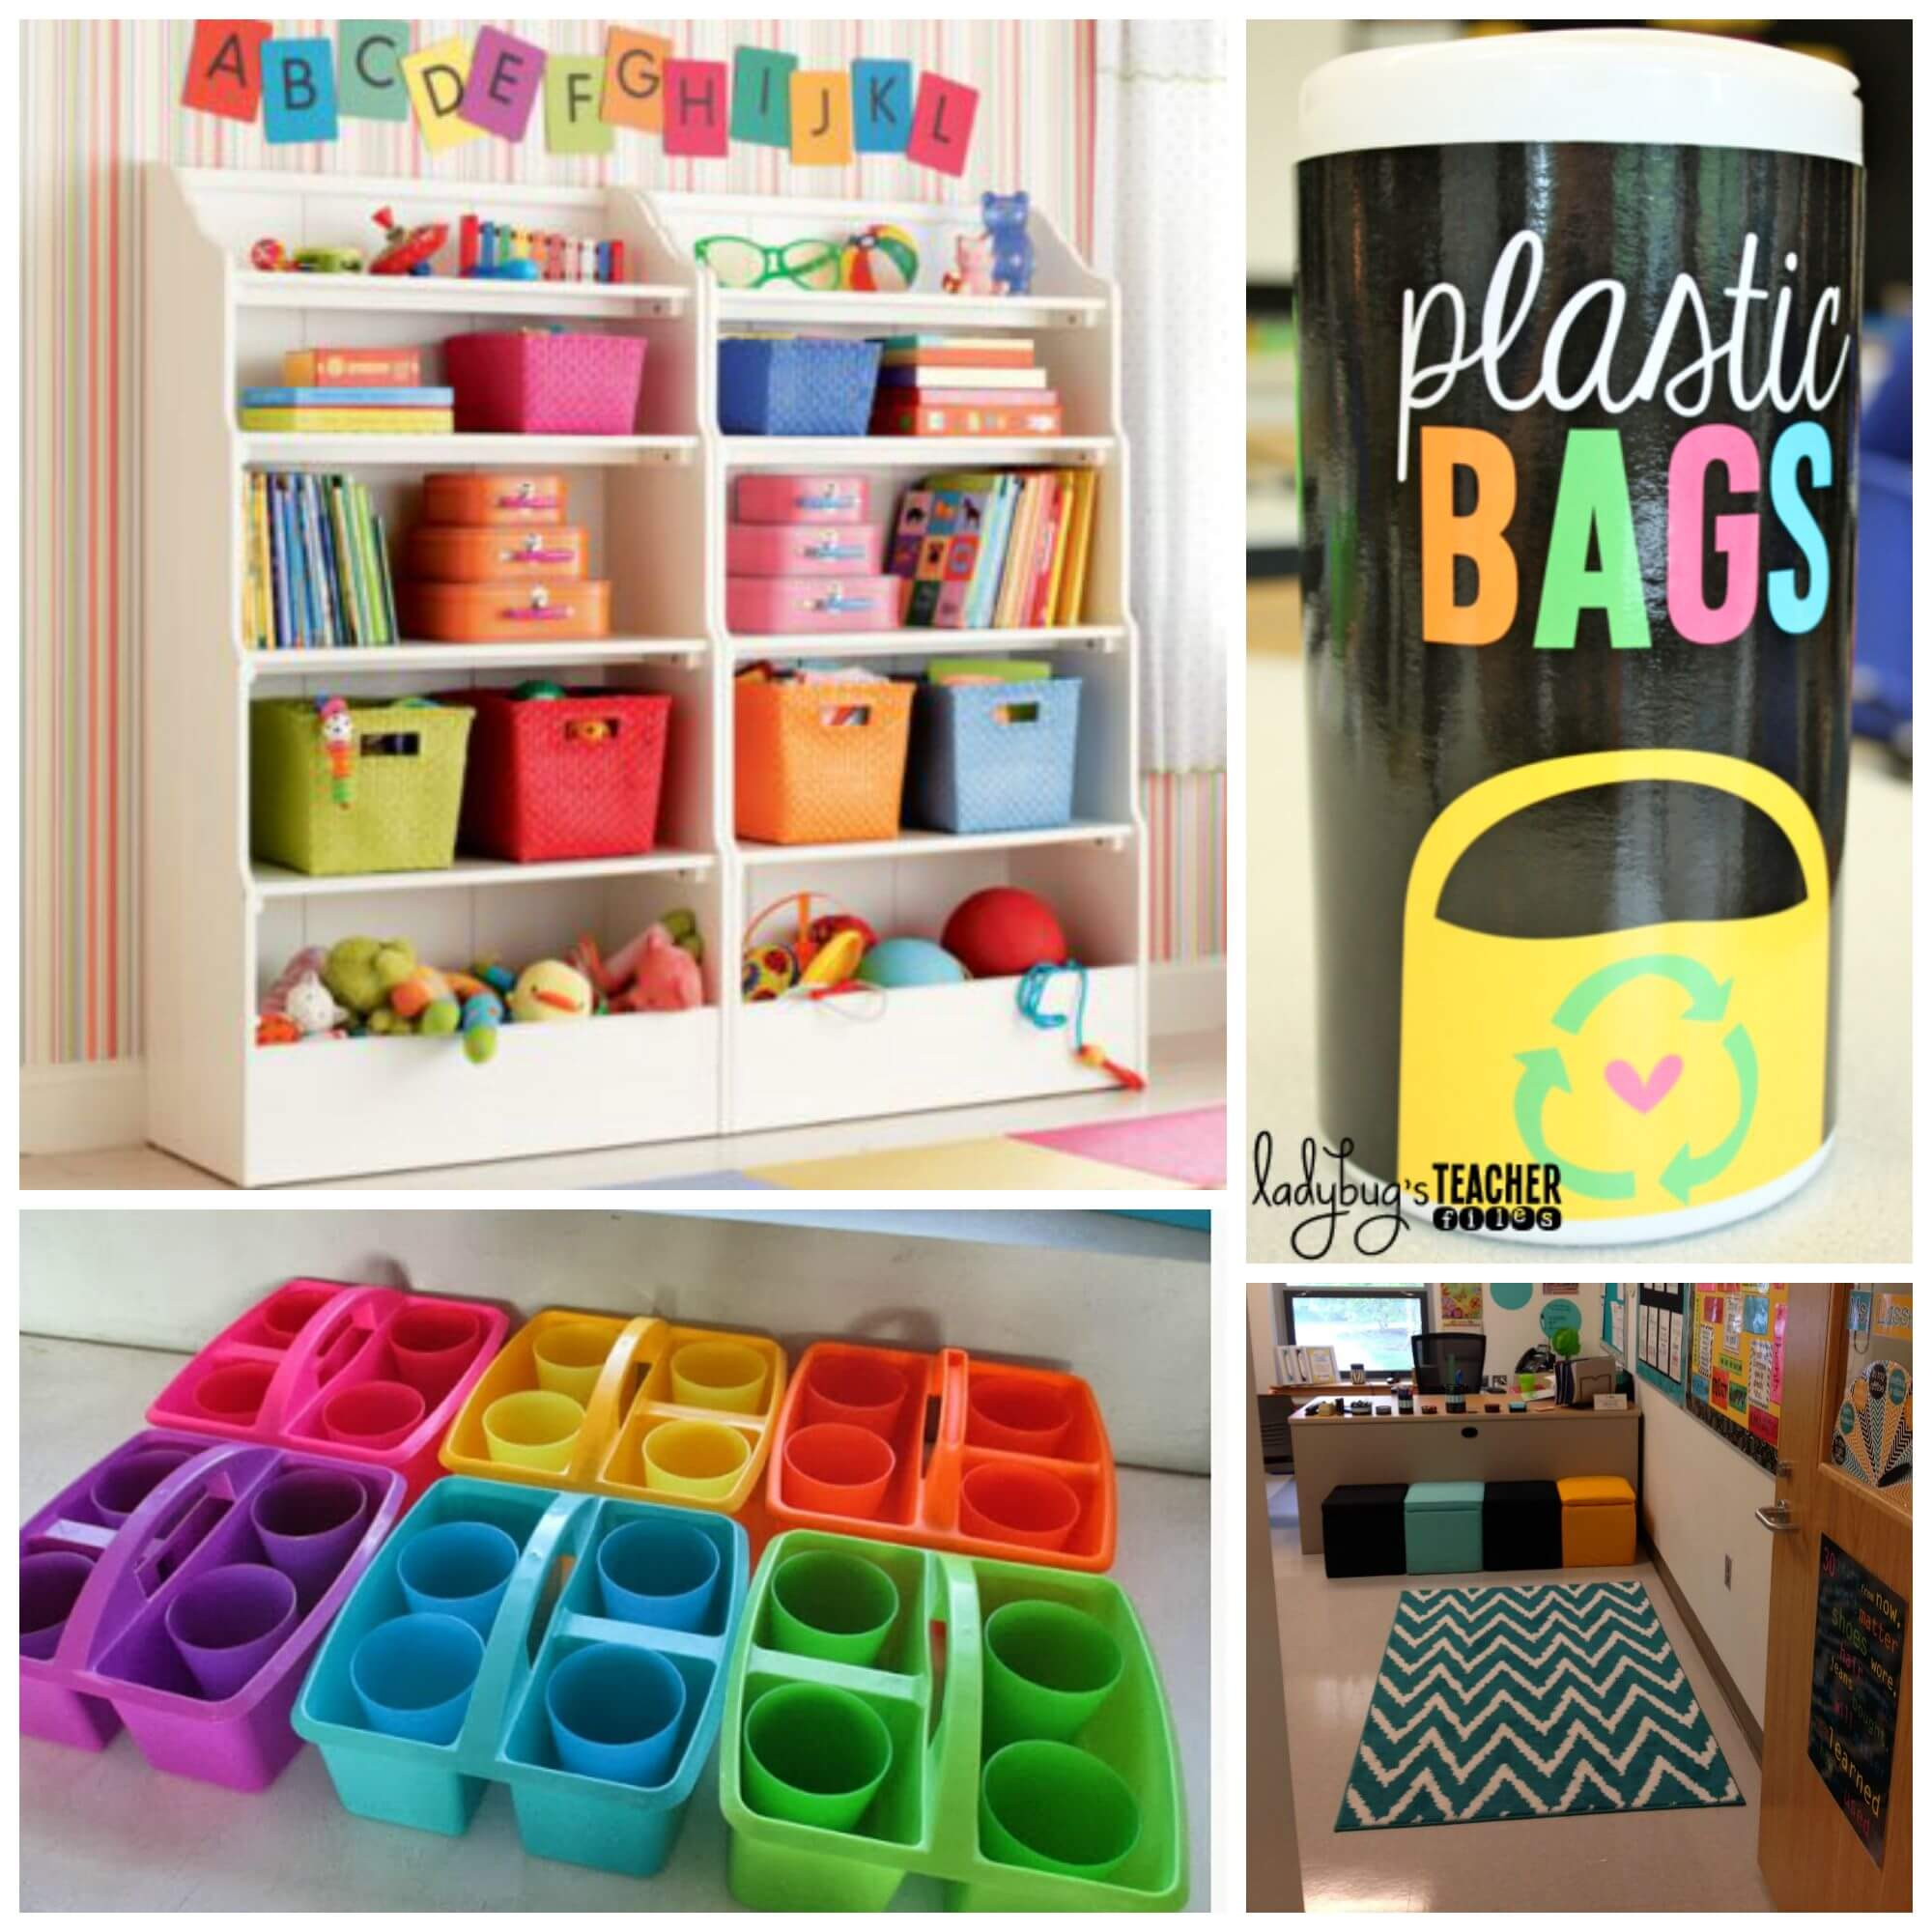 Toddler Classroom Decoration Ideas ~ Inspiring classroom decoration ideas playdough to plato